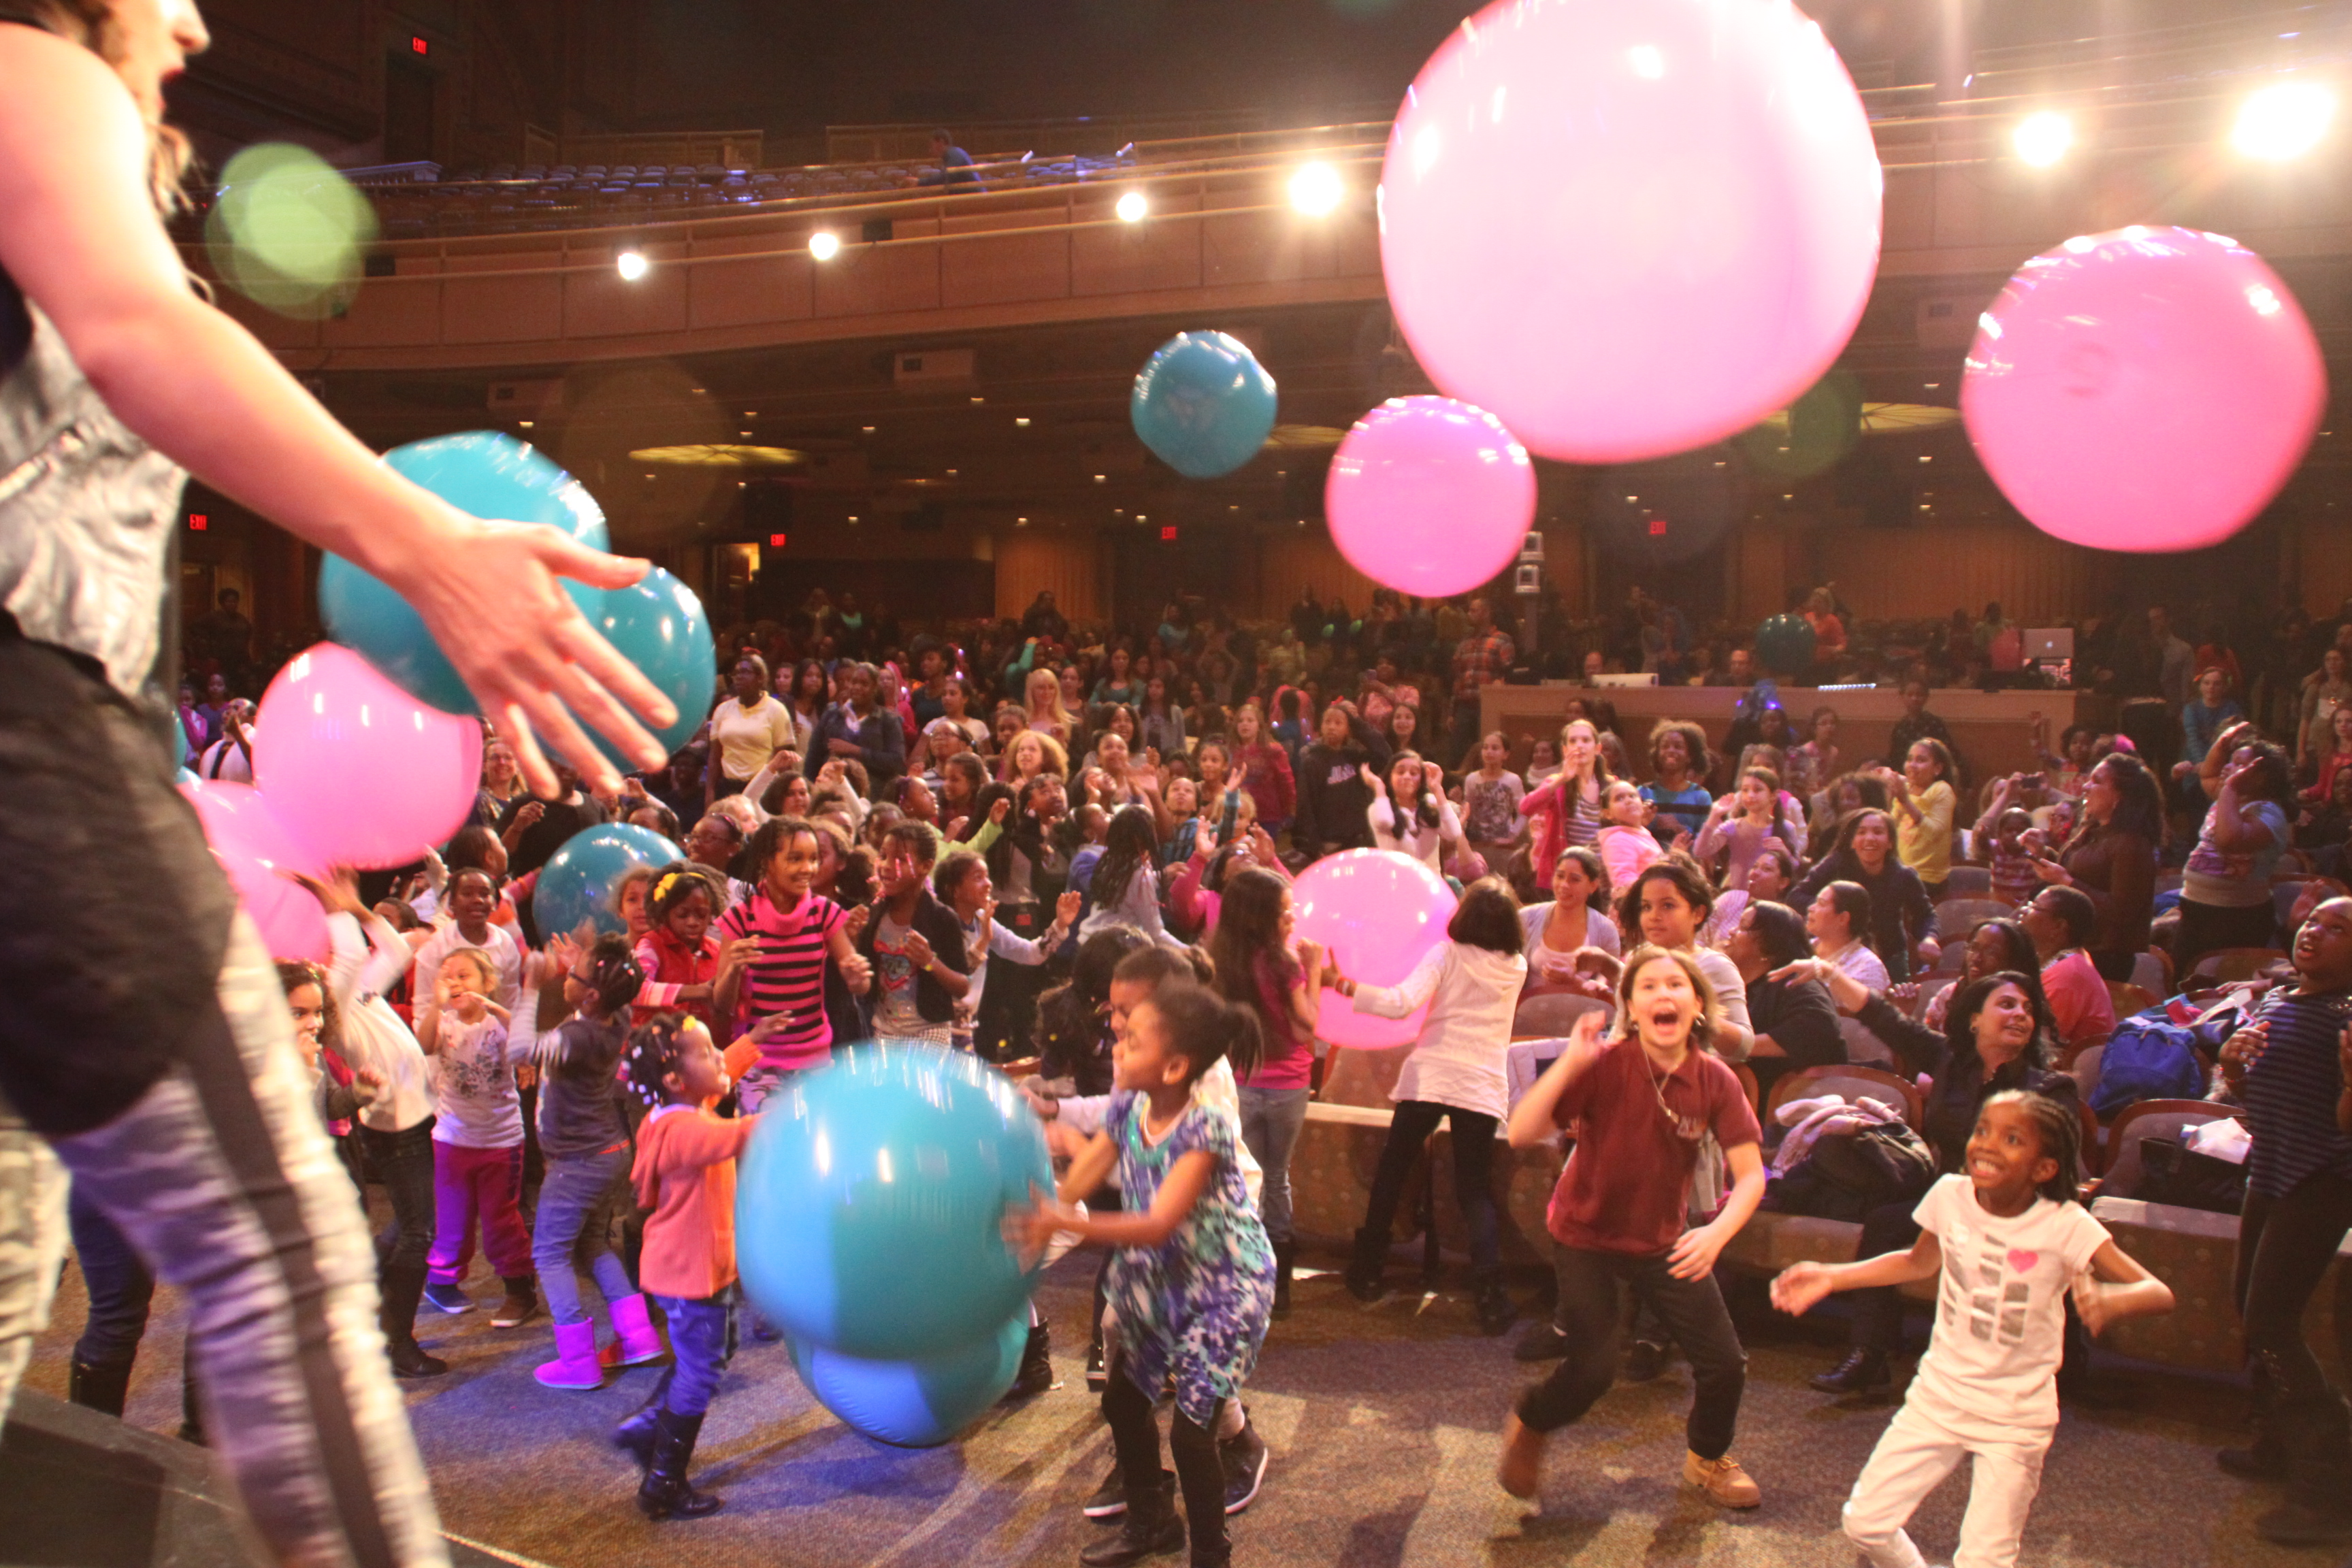 Girls and their moms playing with balloons in an auditorium